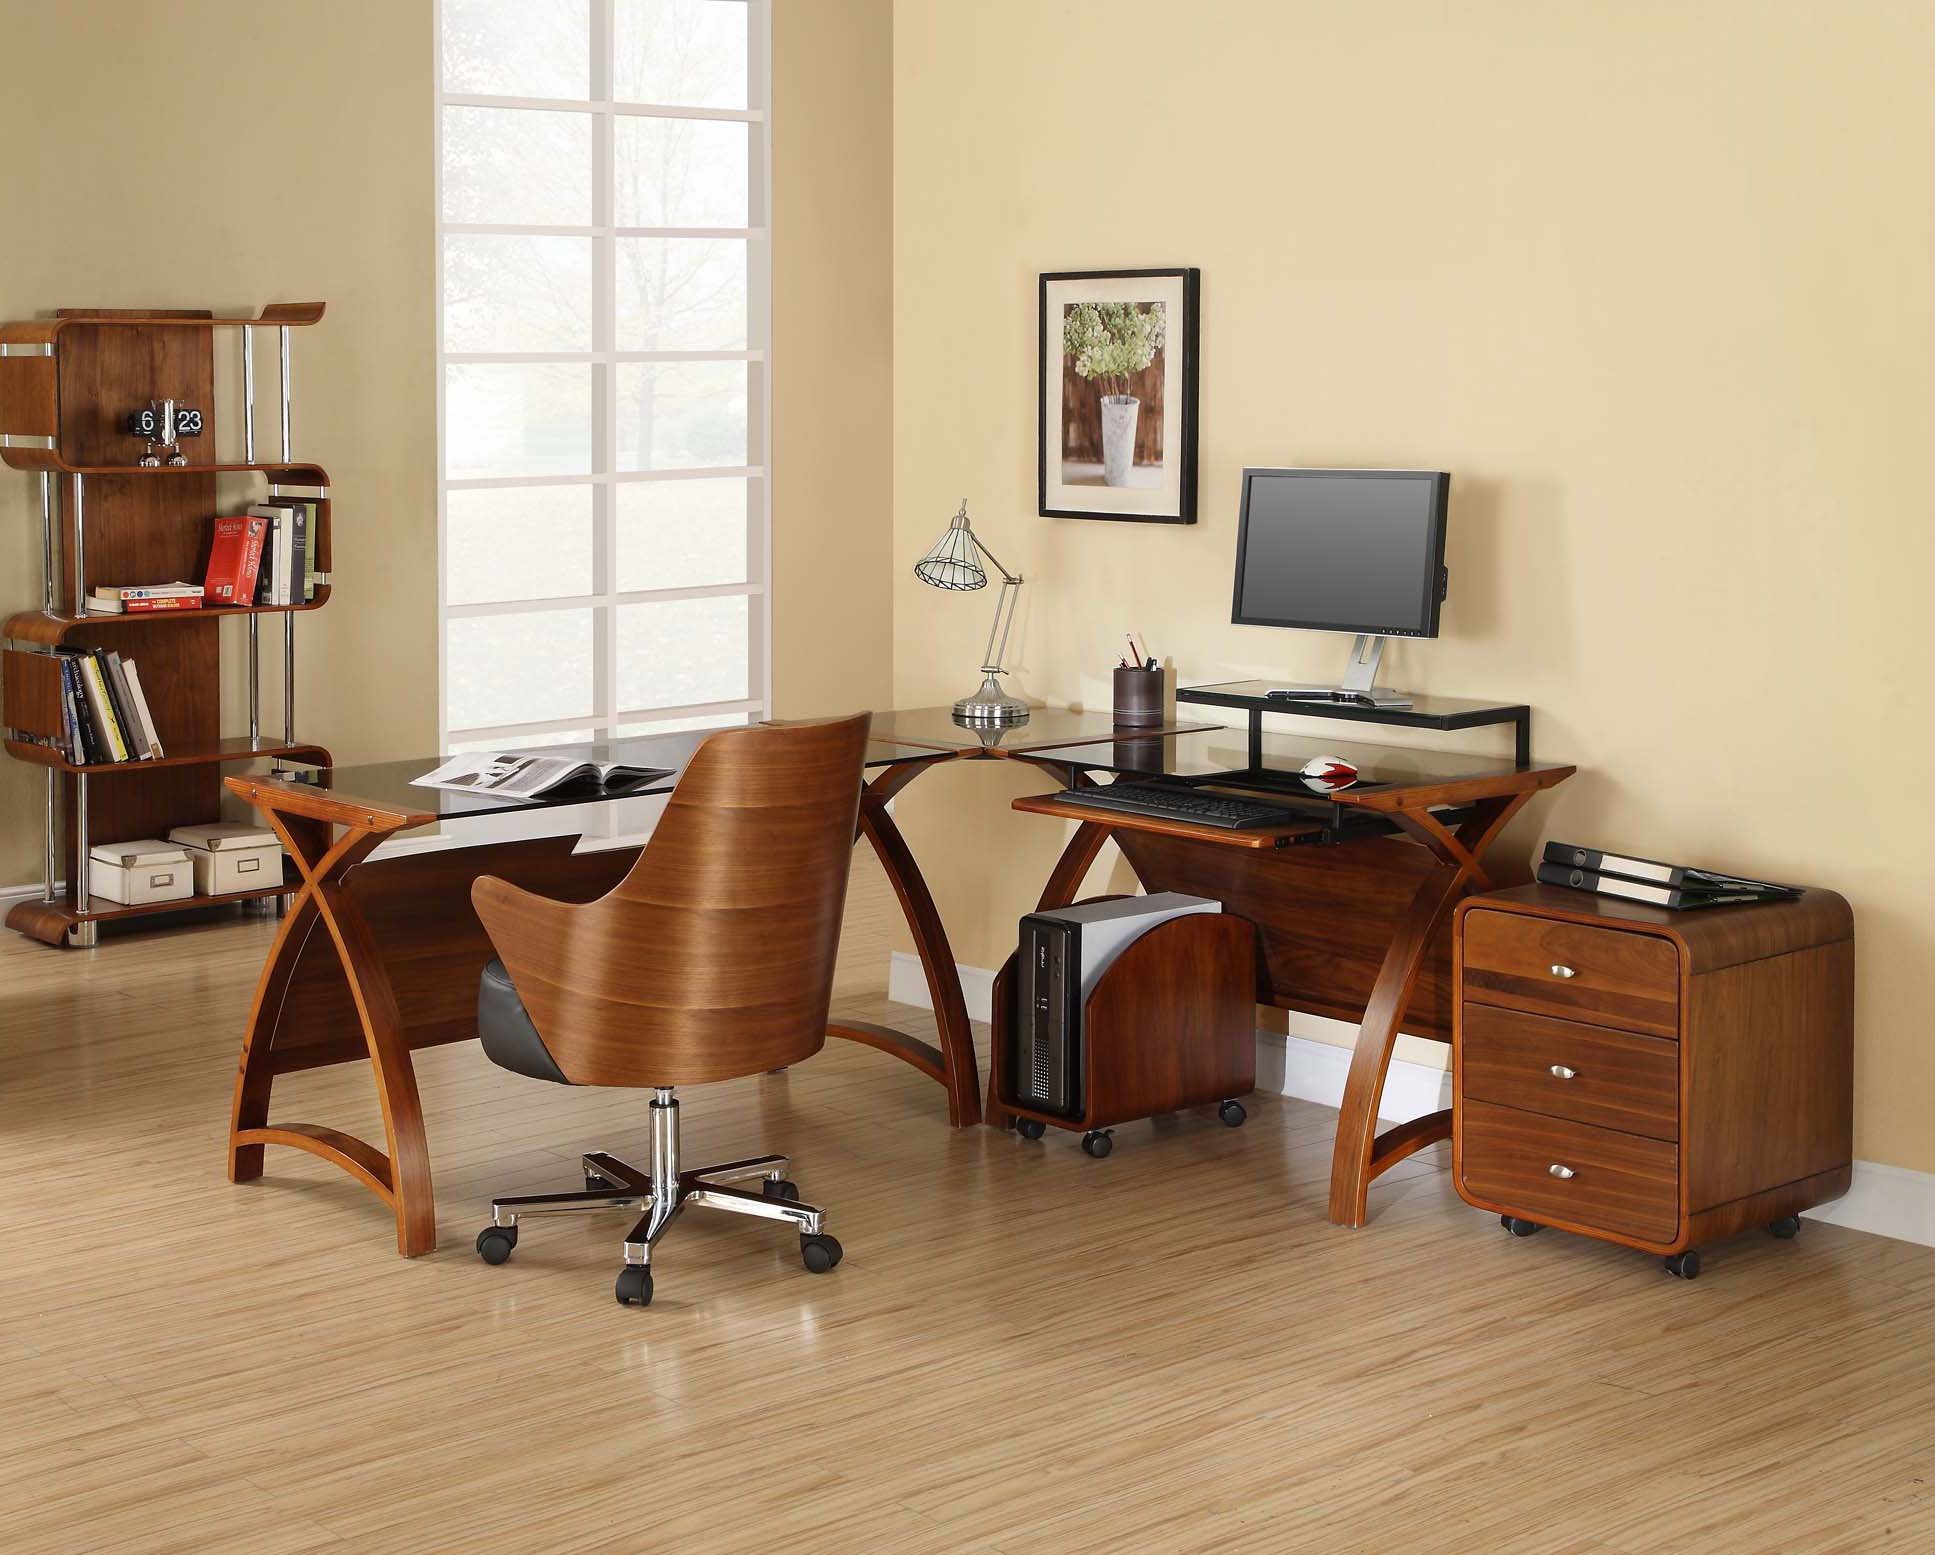 Office Arm Chair Room Set Wal